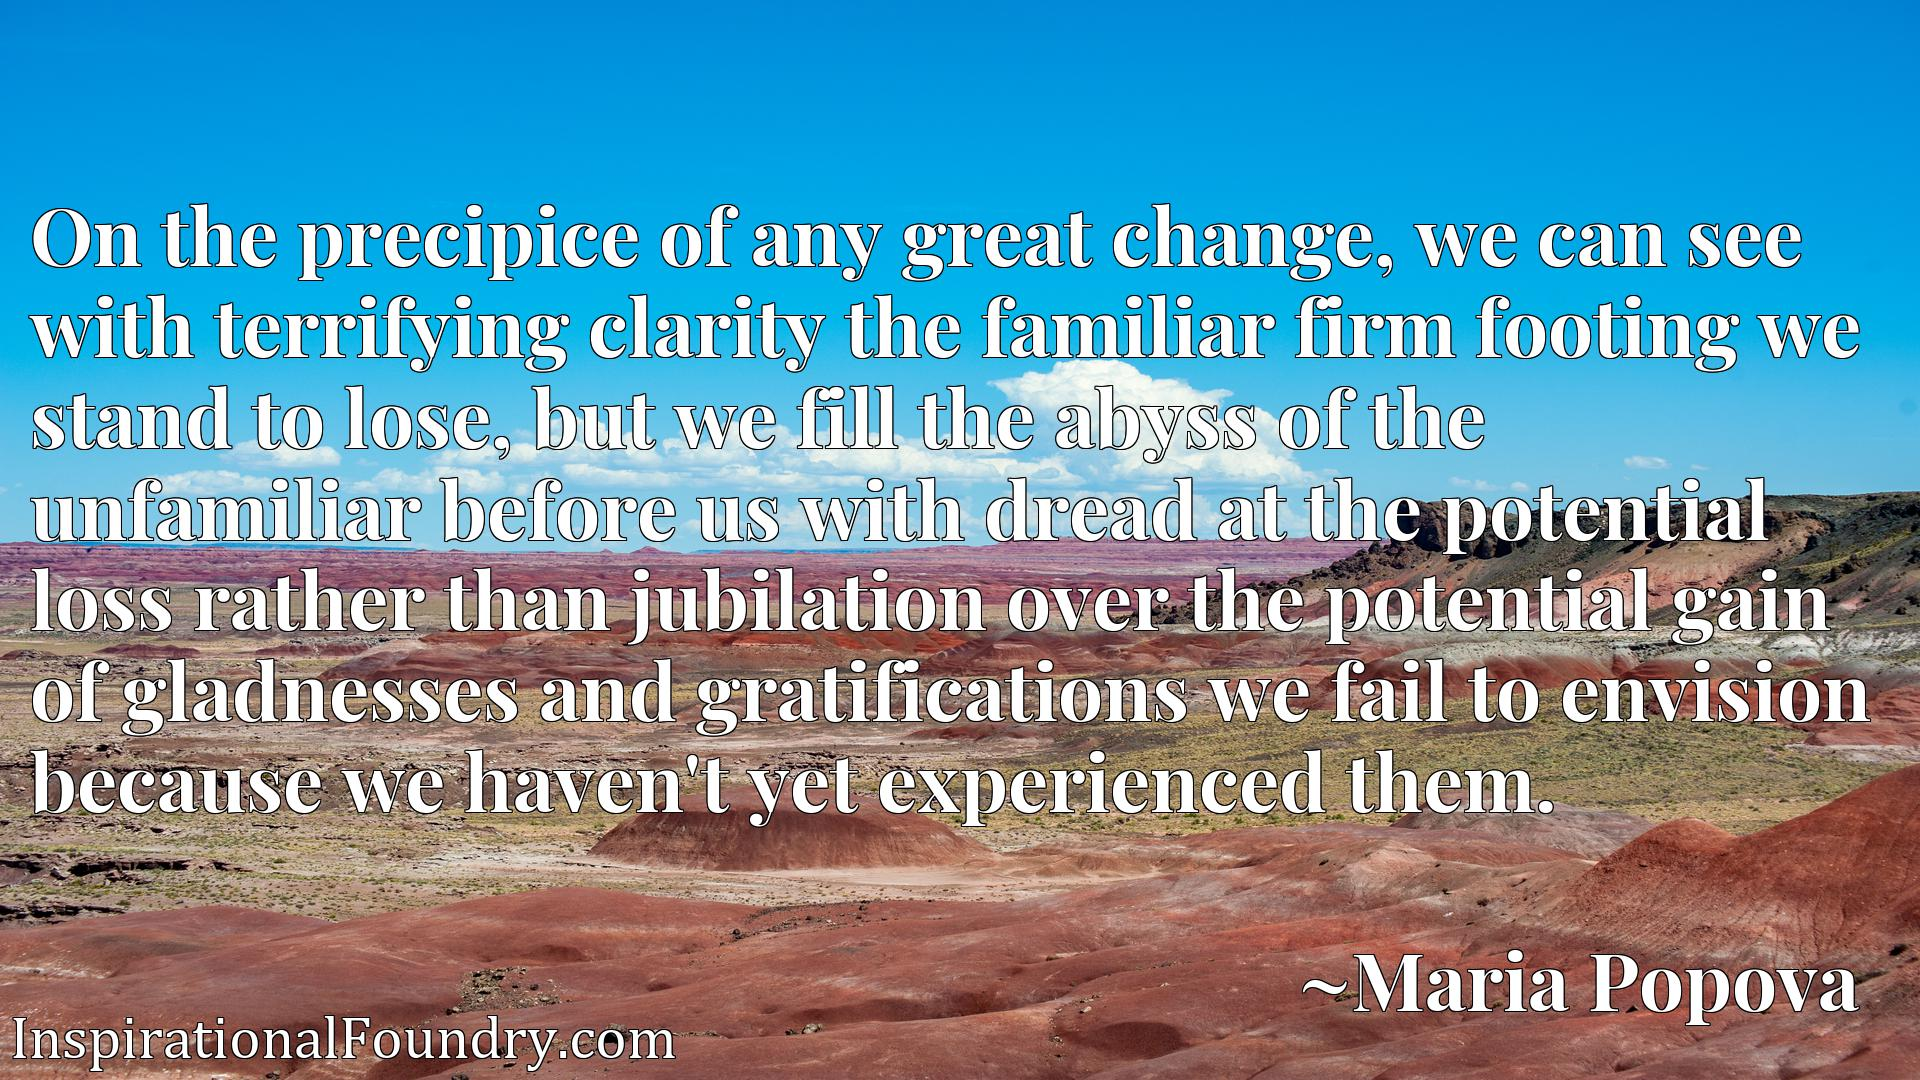 On the precipice of any great change, we can see with terrifying clarity the familiar firm footing we stand to lose, but we fill the abyss of the unfamiliar before us with dread at the potential loss rather than jubilation over the potential gain of gladnesses and gratifications we fail to envision because we haven't yet experienced them.